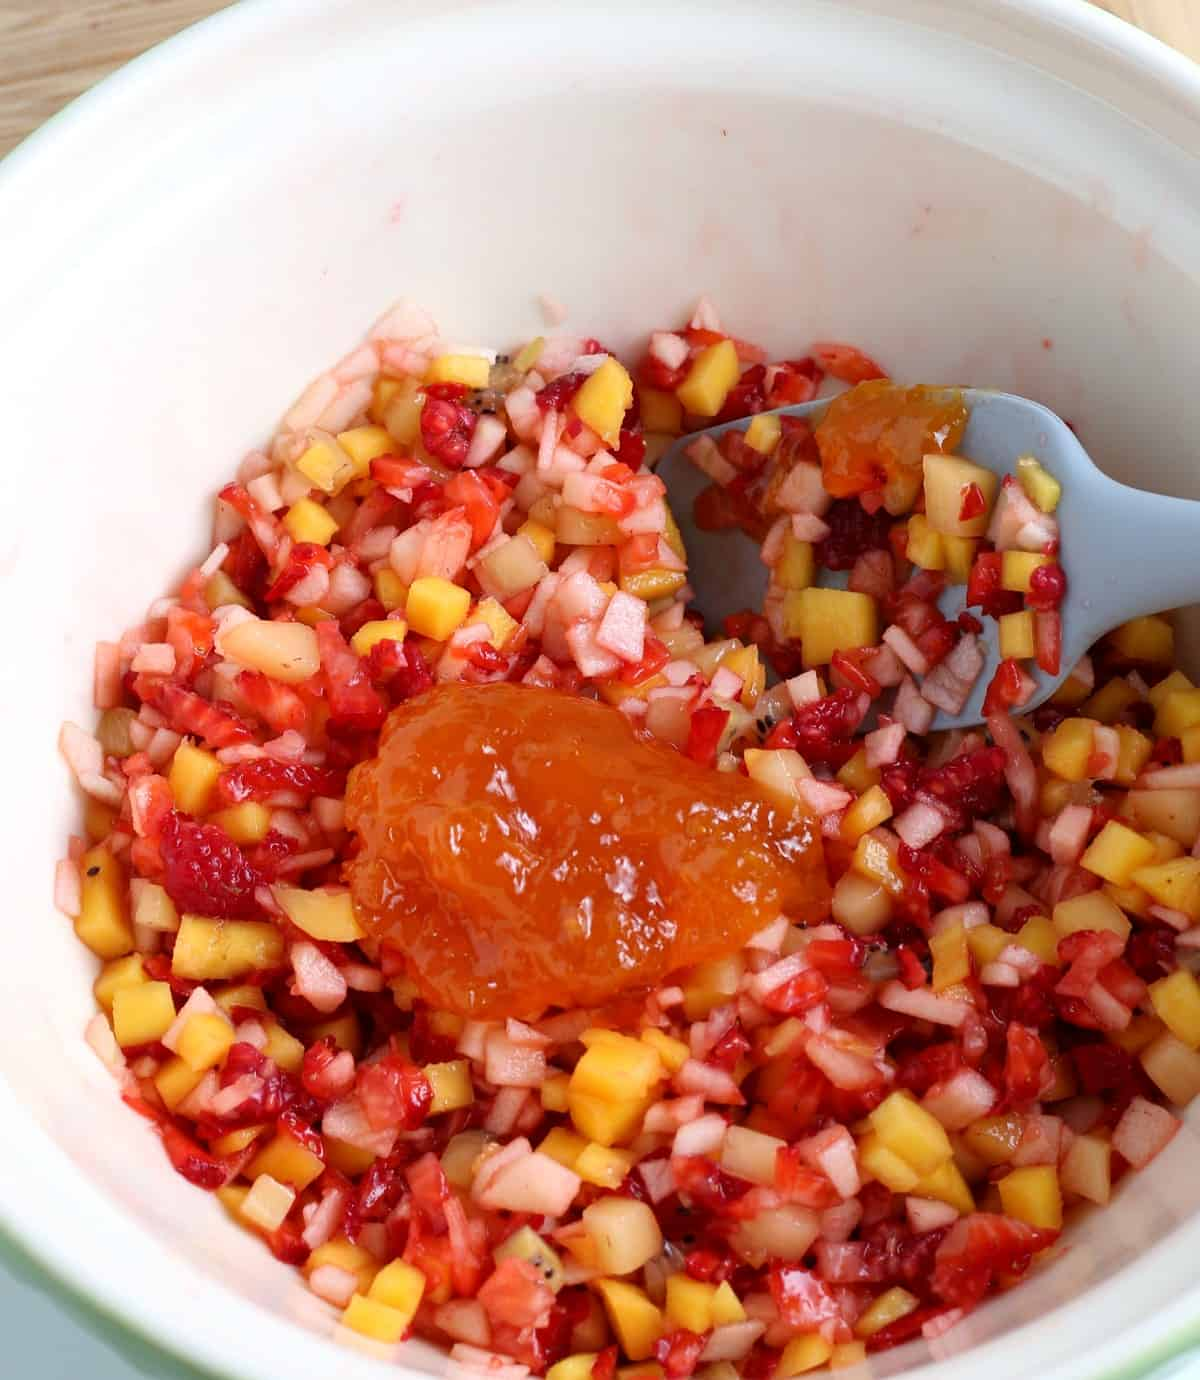 Marmalade is dolloped in the center of freshly diced fruit so that it can be tossed in the bowl.